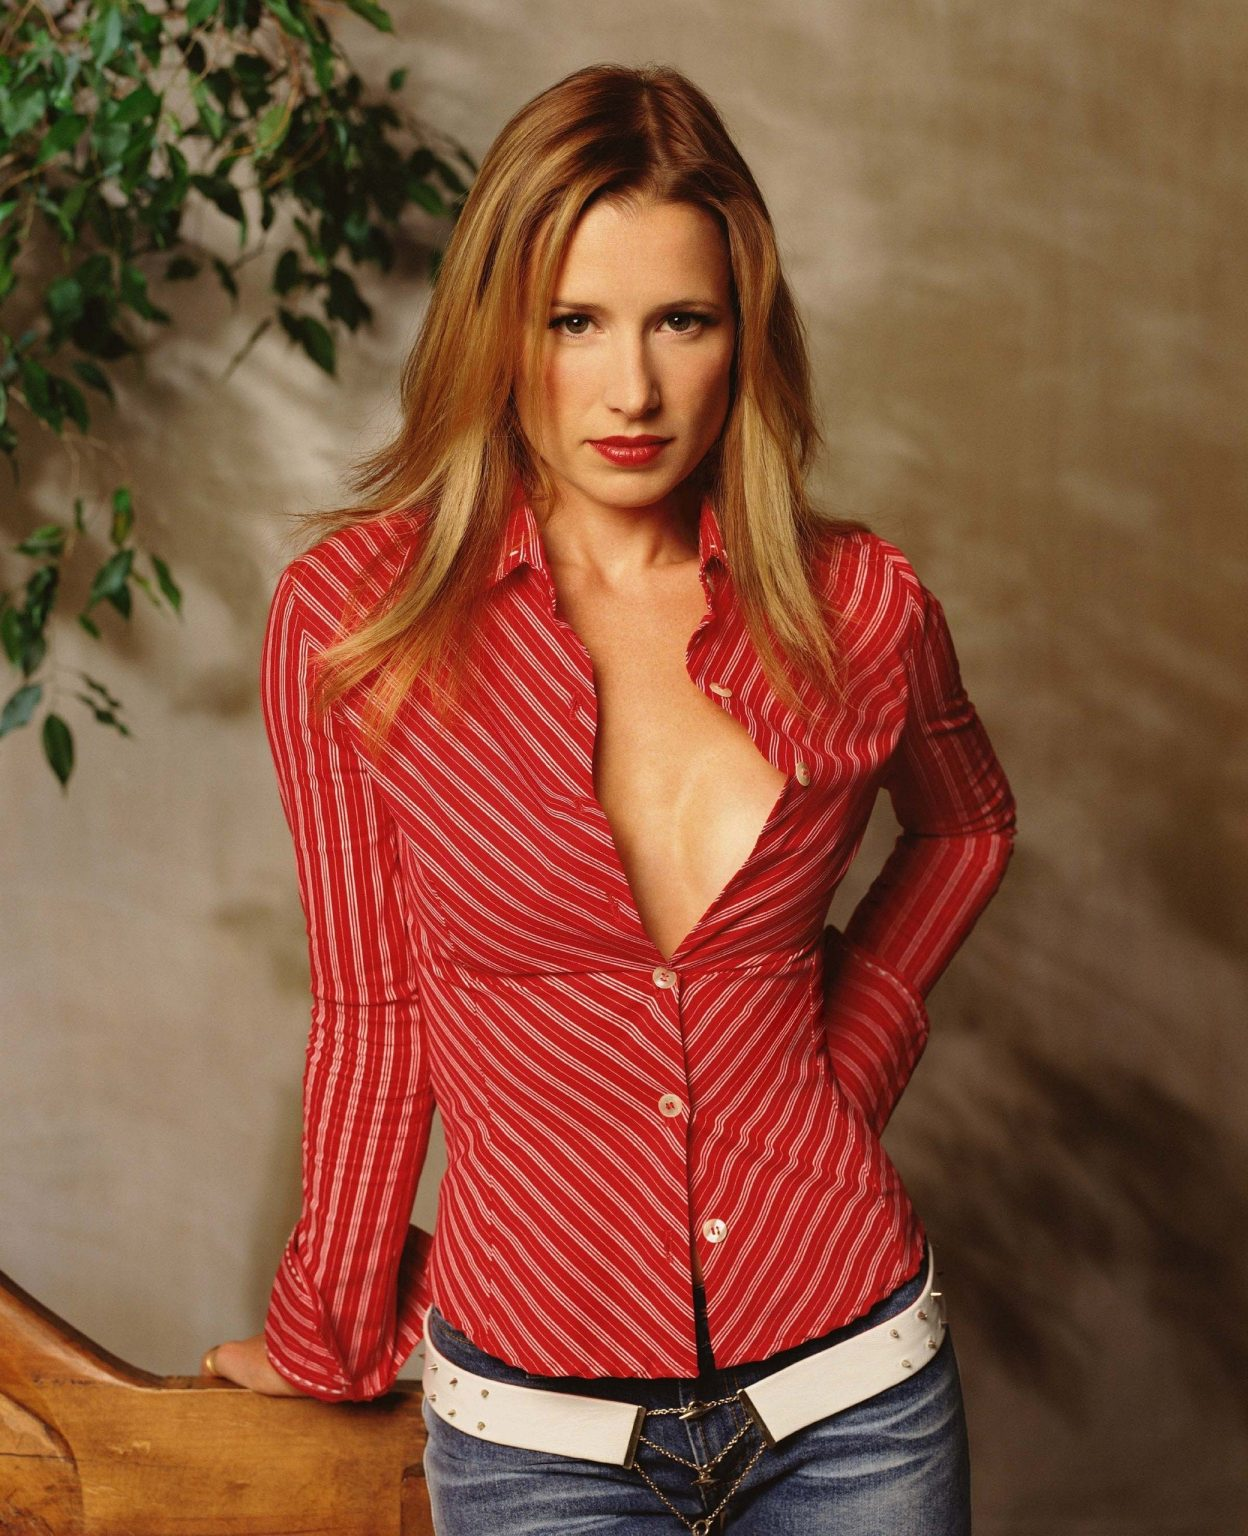 Naked Truth Of Shawnee Smith - Net Worth, Measurements